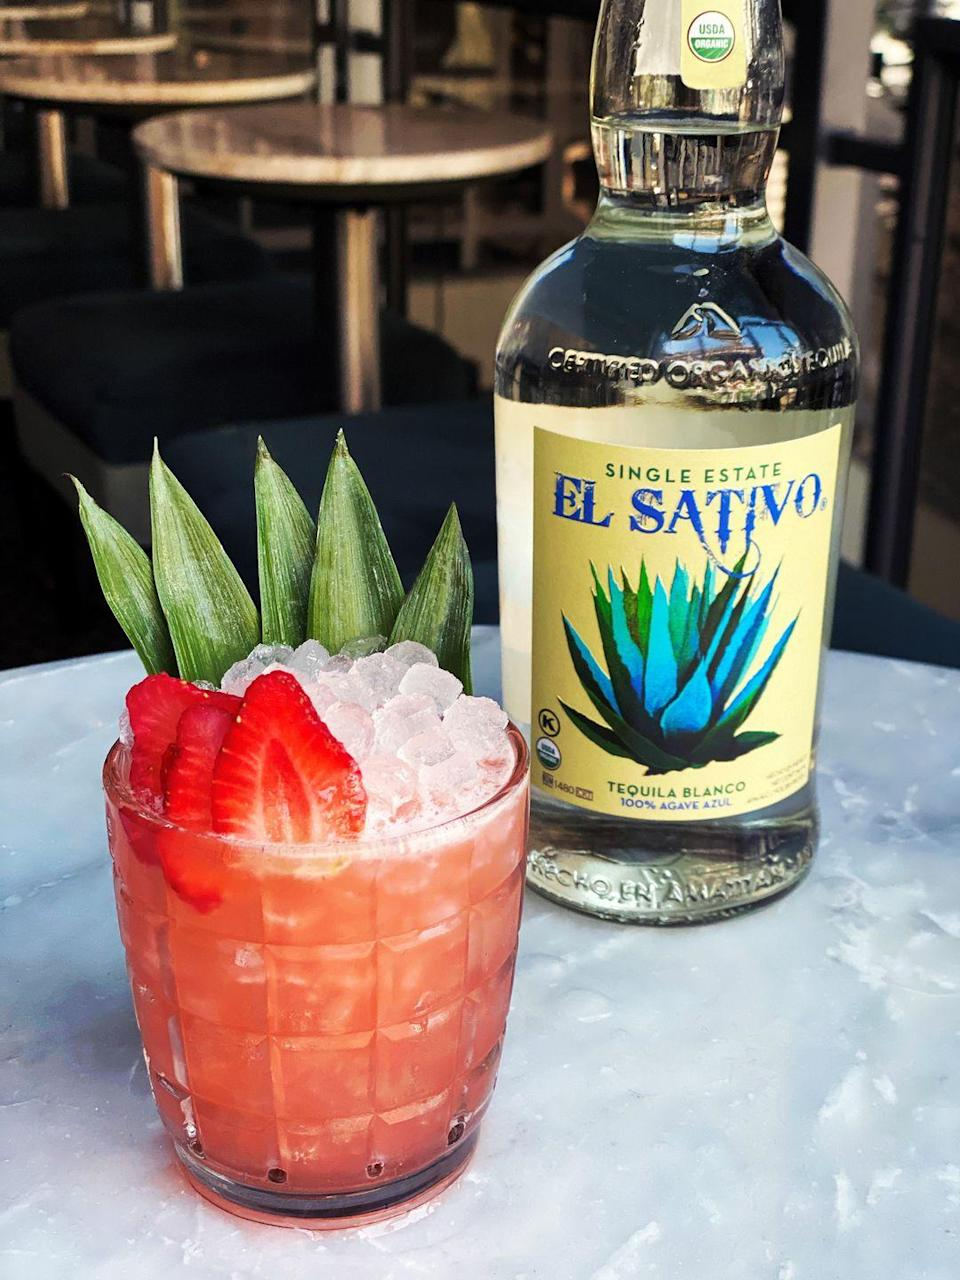 <p>It's strawberry season, and we're always looking for new ways to use this beautiful berry. This festive cocktail will remind you of tropical vacations past and have you dreaming of one someday soon.</p><p><strong>Ingredients:</strong></p><p>2 ounces El Sativo Blanco tequila (or tequila of choice)</p><p>1 ounce fresh lemon juice</p><p>3/4 ounces light agave syrup</p><p>1/2 ounce Fino sherry</p><p>1 strawberry, plus extras for garnish</p><p>pineapple, for garnish</p><p><strong>Directions:</strong></p><ol><li>De-stem and muddle one whole strawberry.</li><li>Add all ingredients and ice to a cocktail shaker tin and shake.</li><li>Fine-strain mixture into a rocks glass and add three ice cubes, plus gem ice. Garnish with strawberry slices and a pineapple fan (optional).</li></ol>